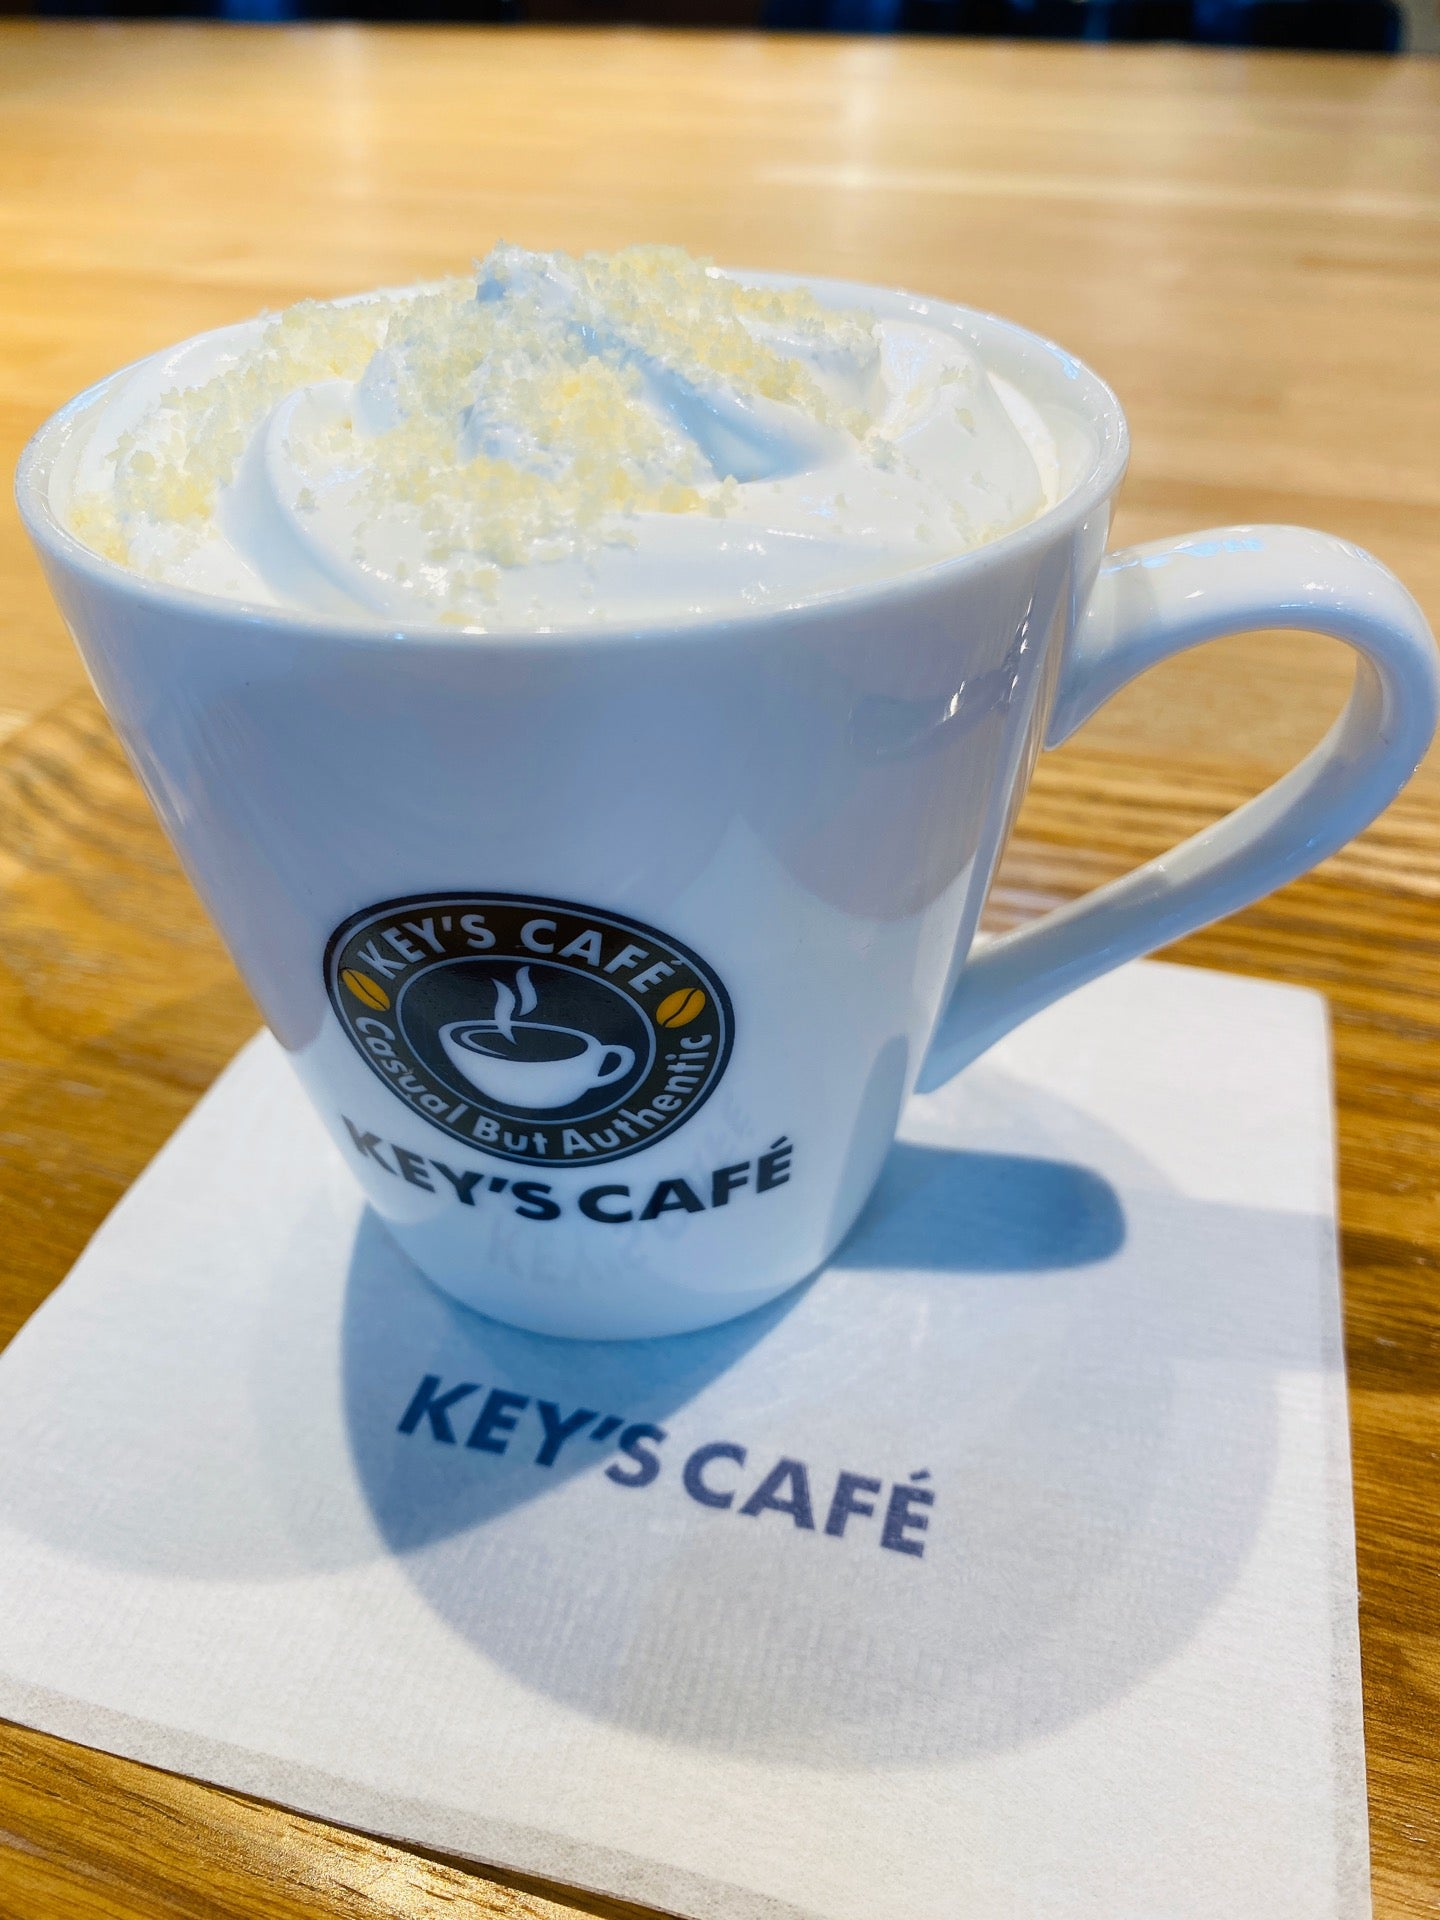 Cheese Cake Latte Cafe & Tea (@ キーズカフェ ビックカメラ名古屋JRゲートタワー店 - @bic_keyscafe in 名古屋市, 愛知県) https://t.co/mCzxcsmhIy https://t.co/Hi6QNQcJU9